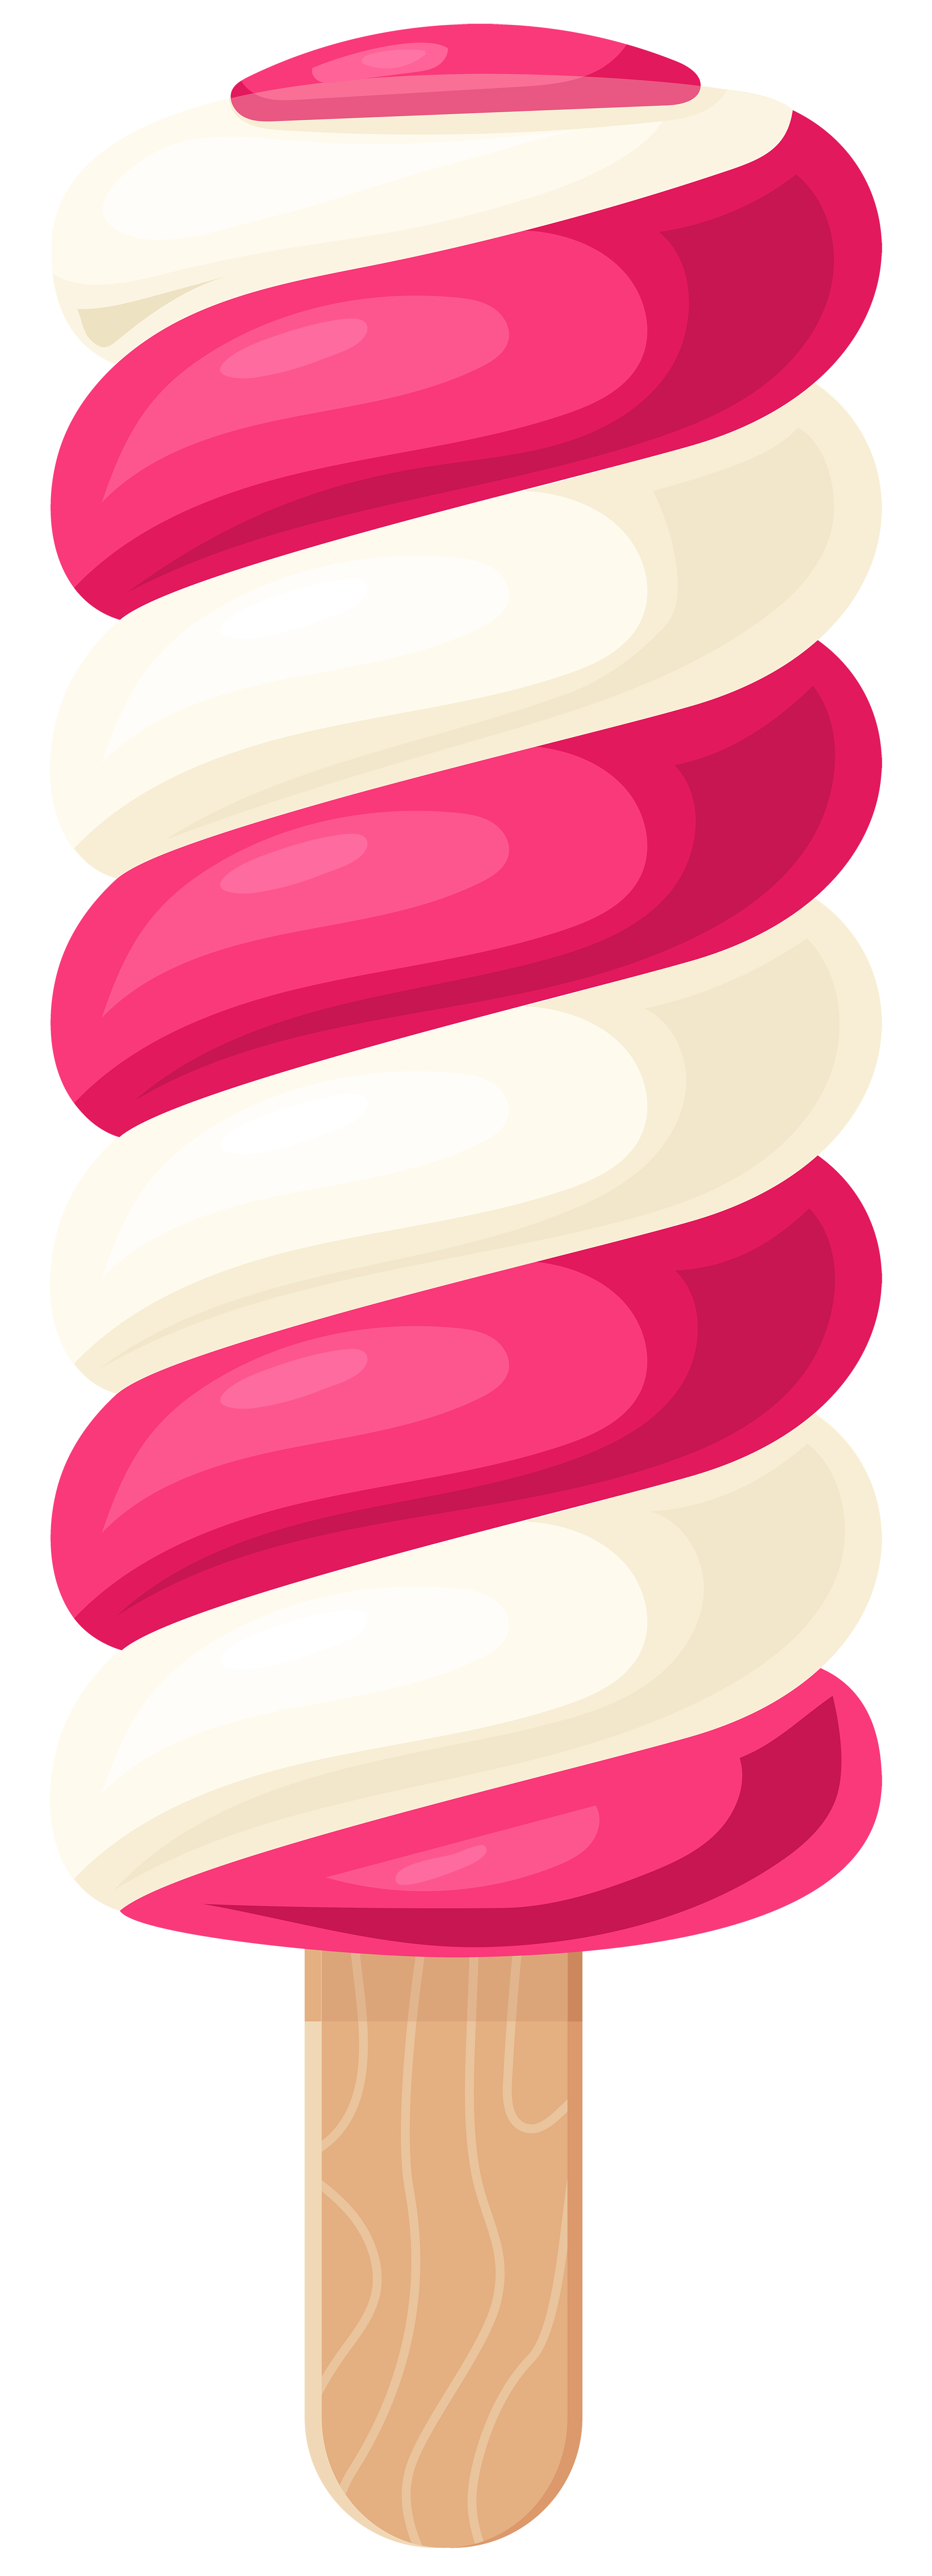 2170x6000 White Pink Ice Cream Stick Png Clip Art